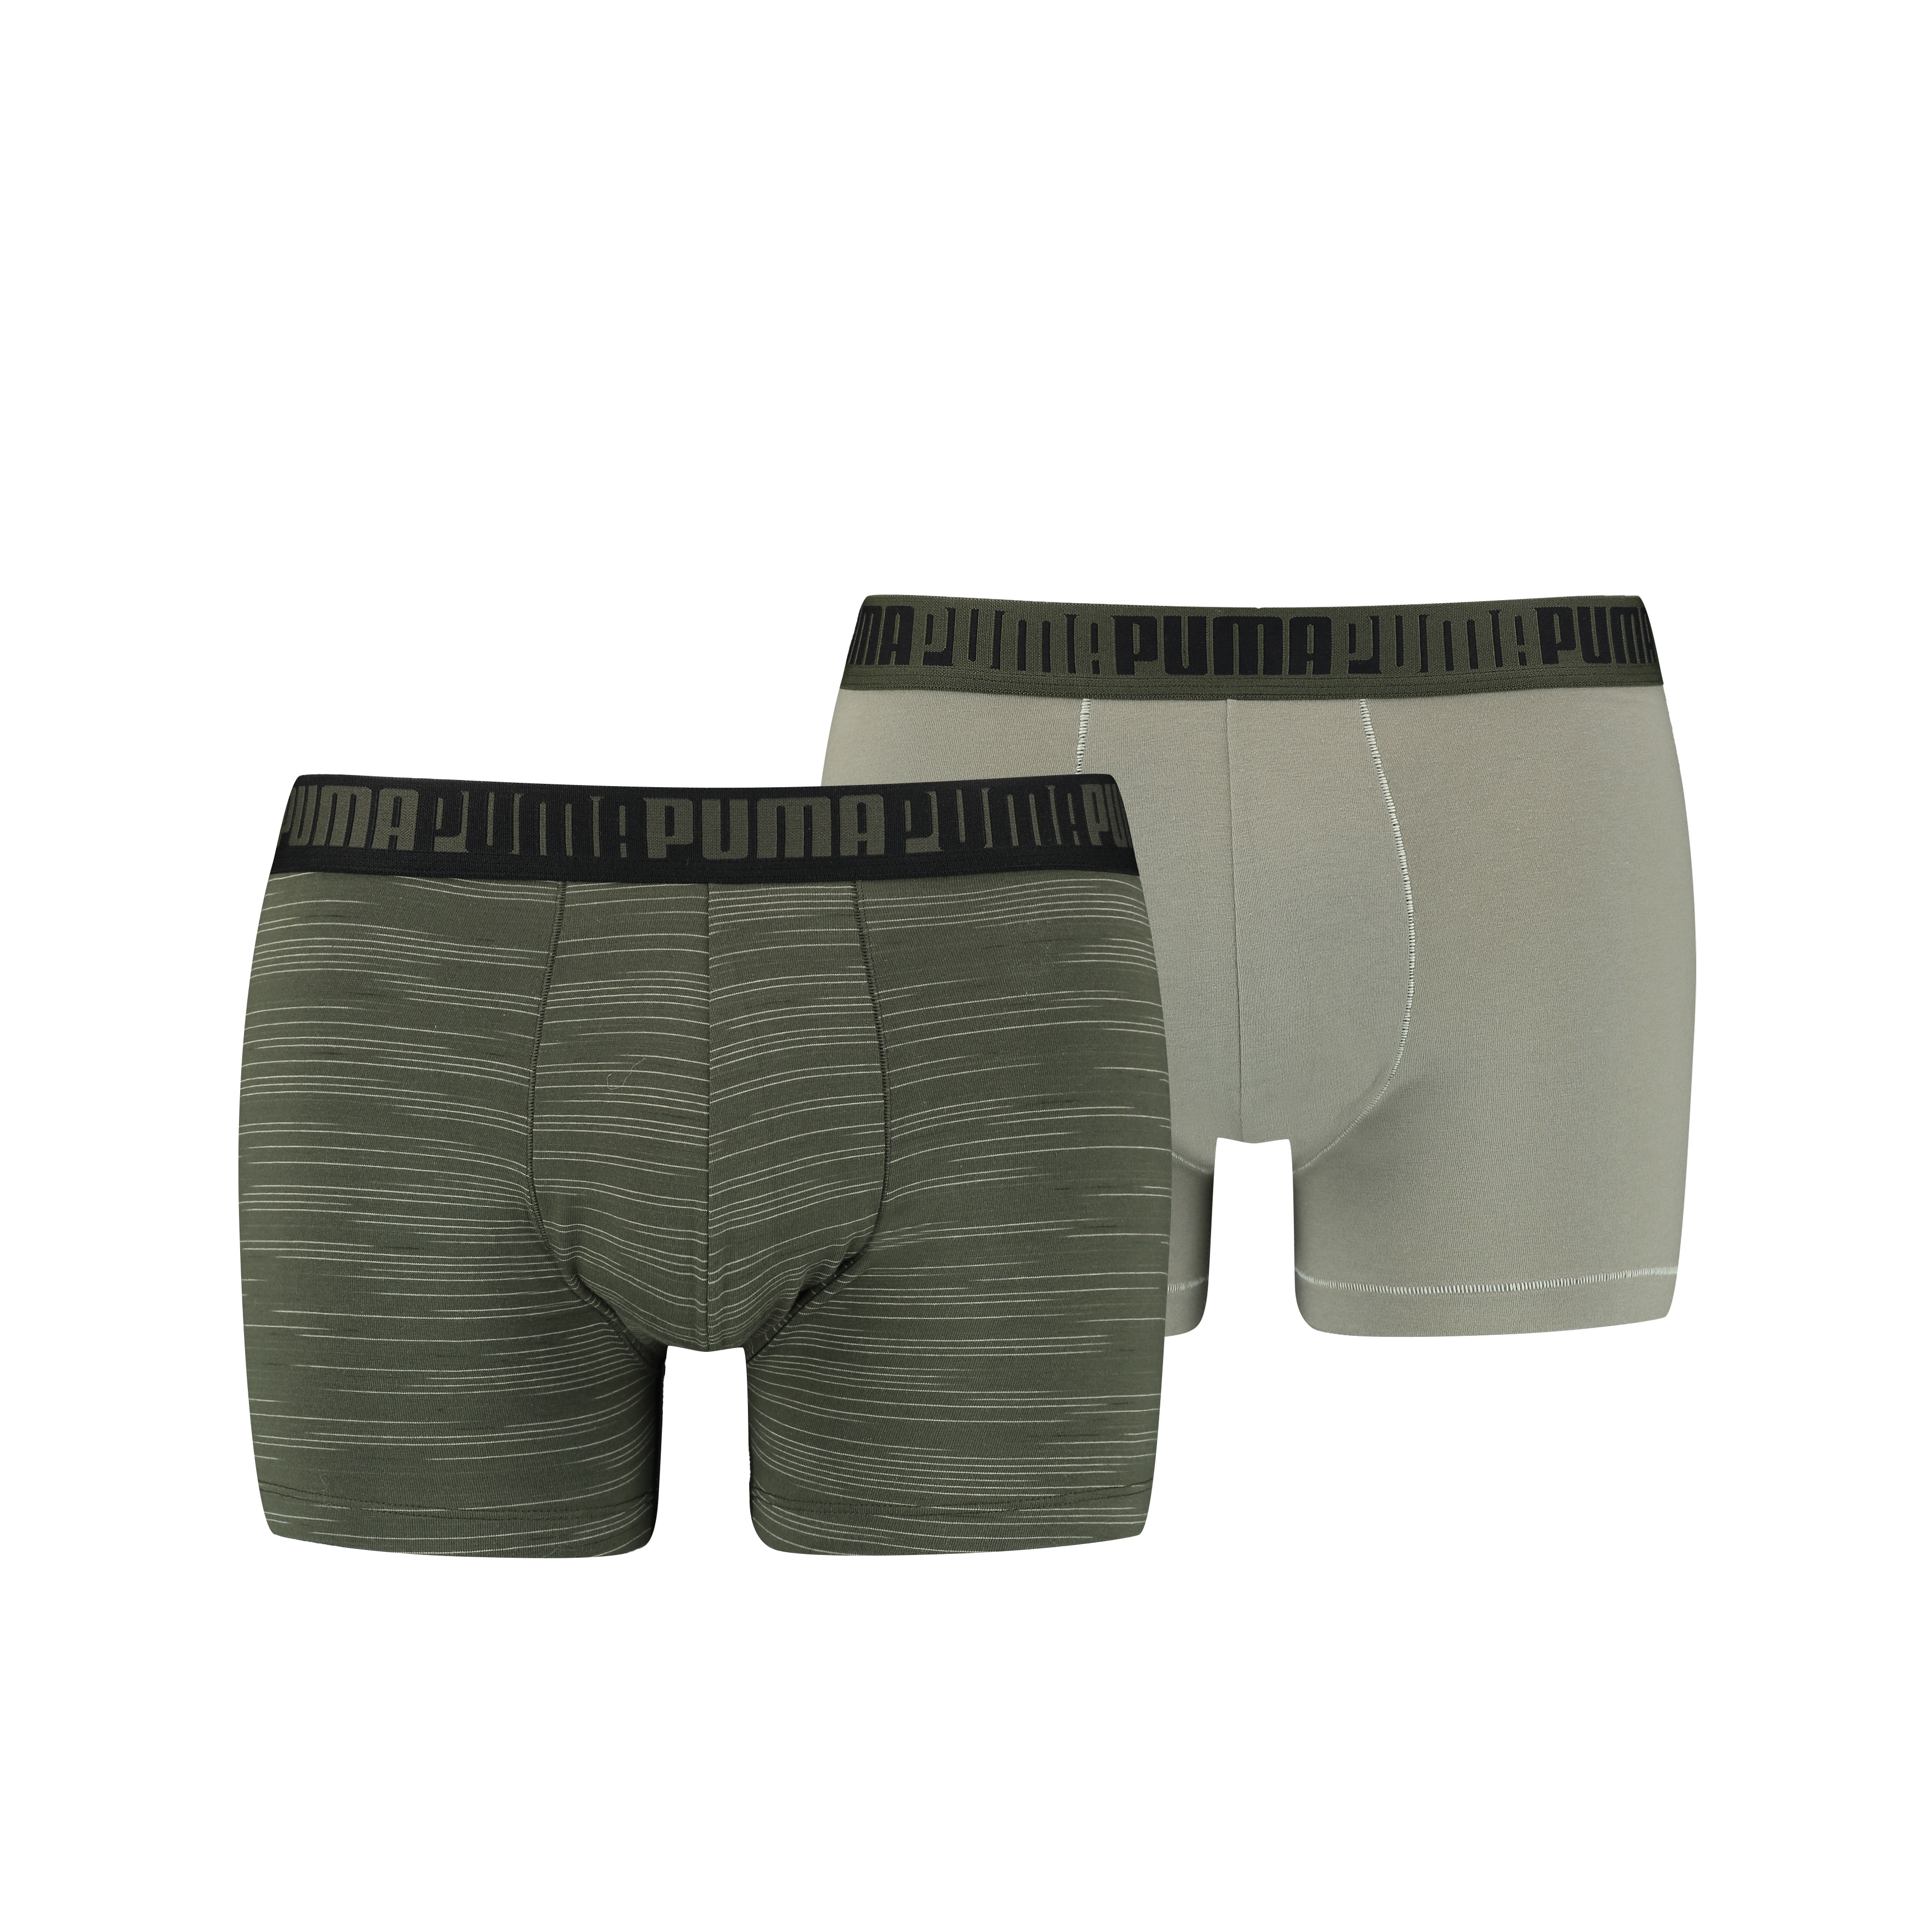 Puma Boxershorts Spacedye Stripe 2-pack Green Combo-S